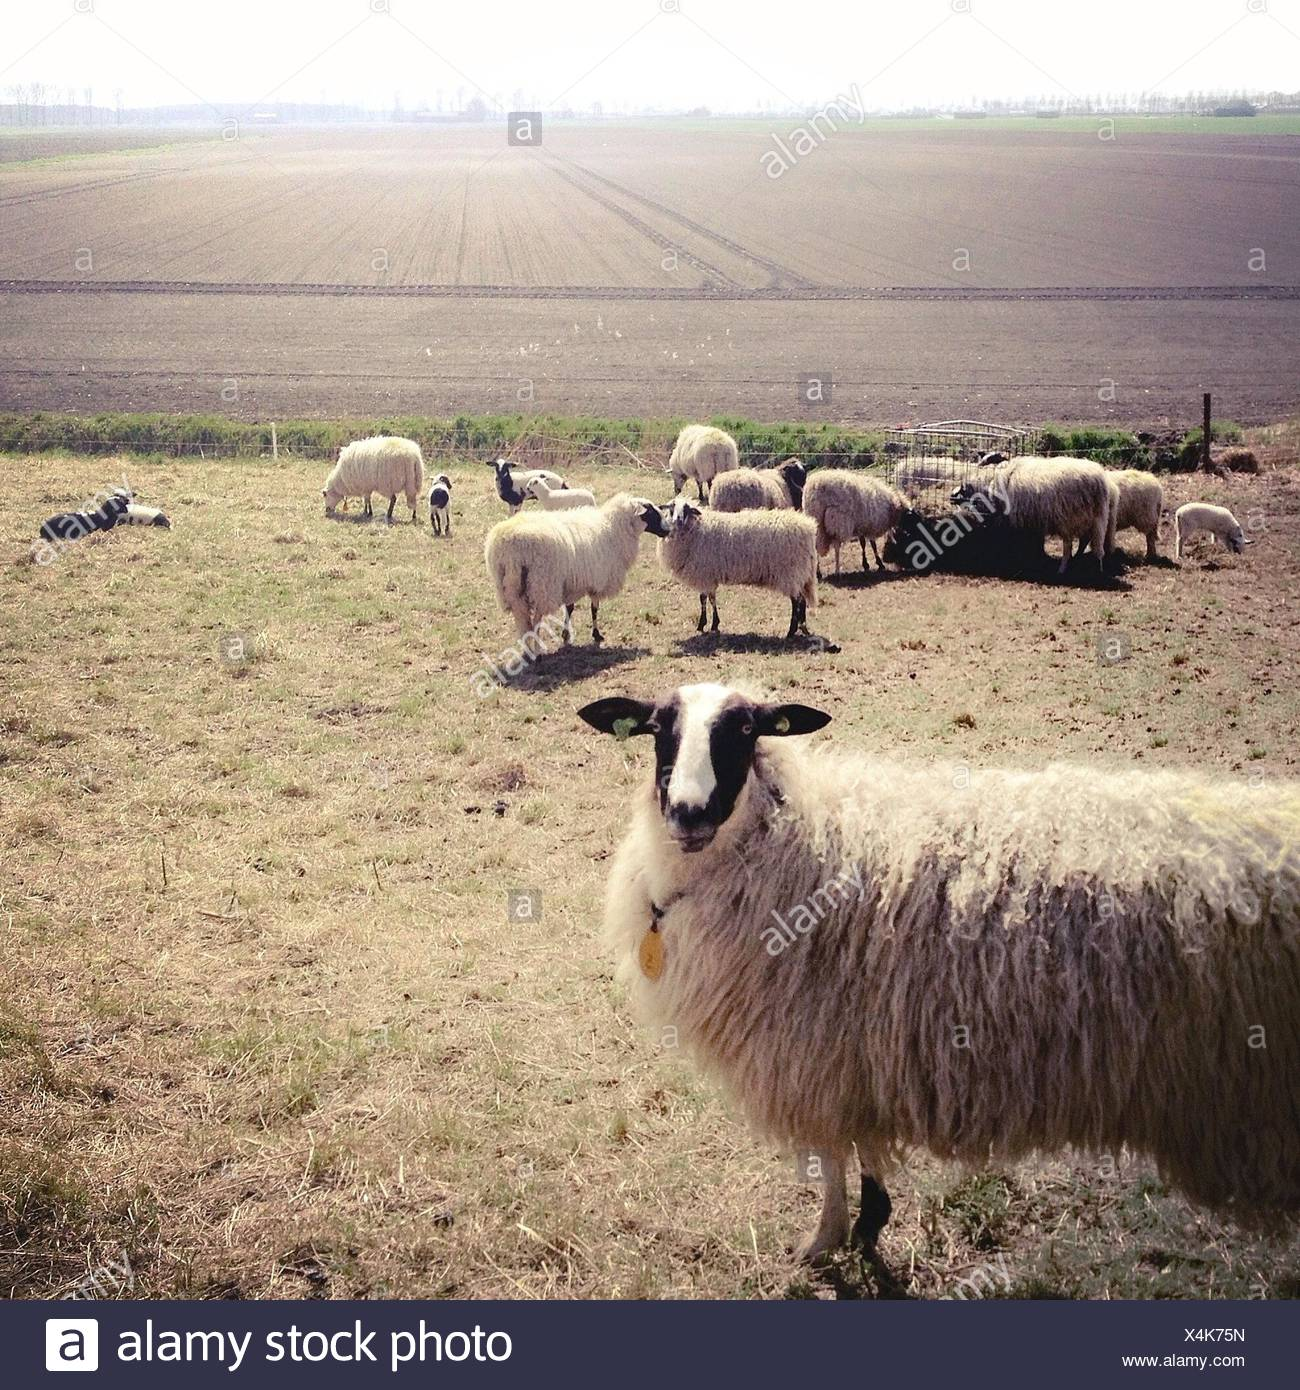 Flock of sheep on pasture - Stock Image